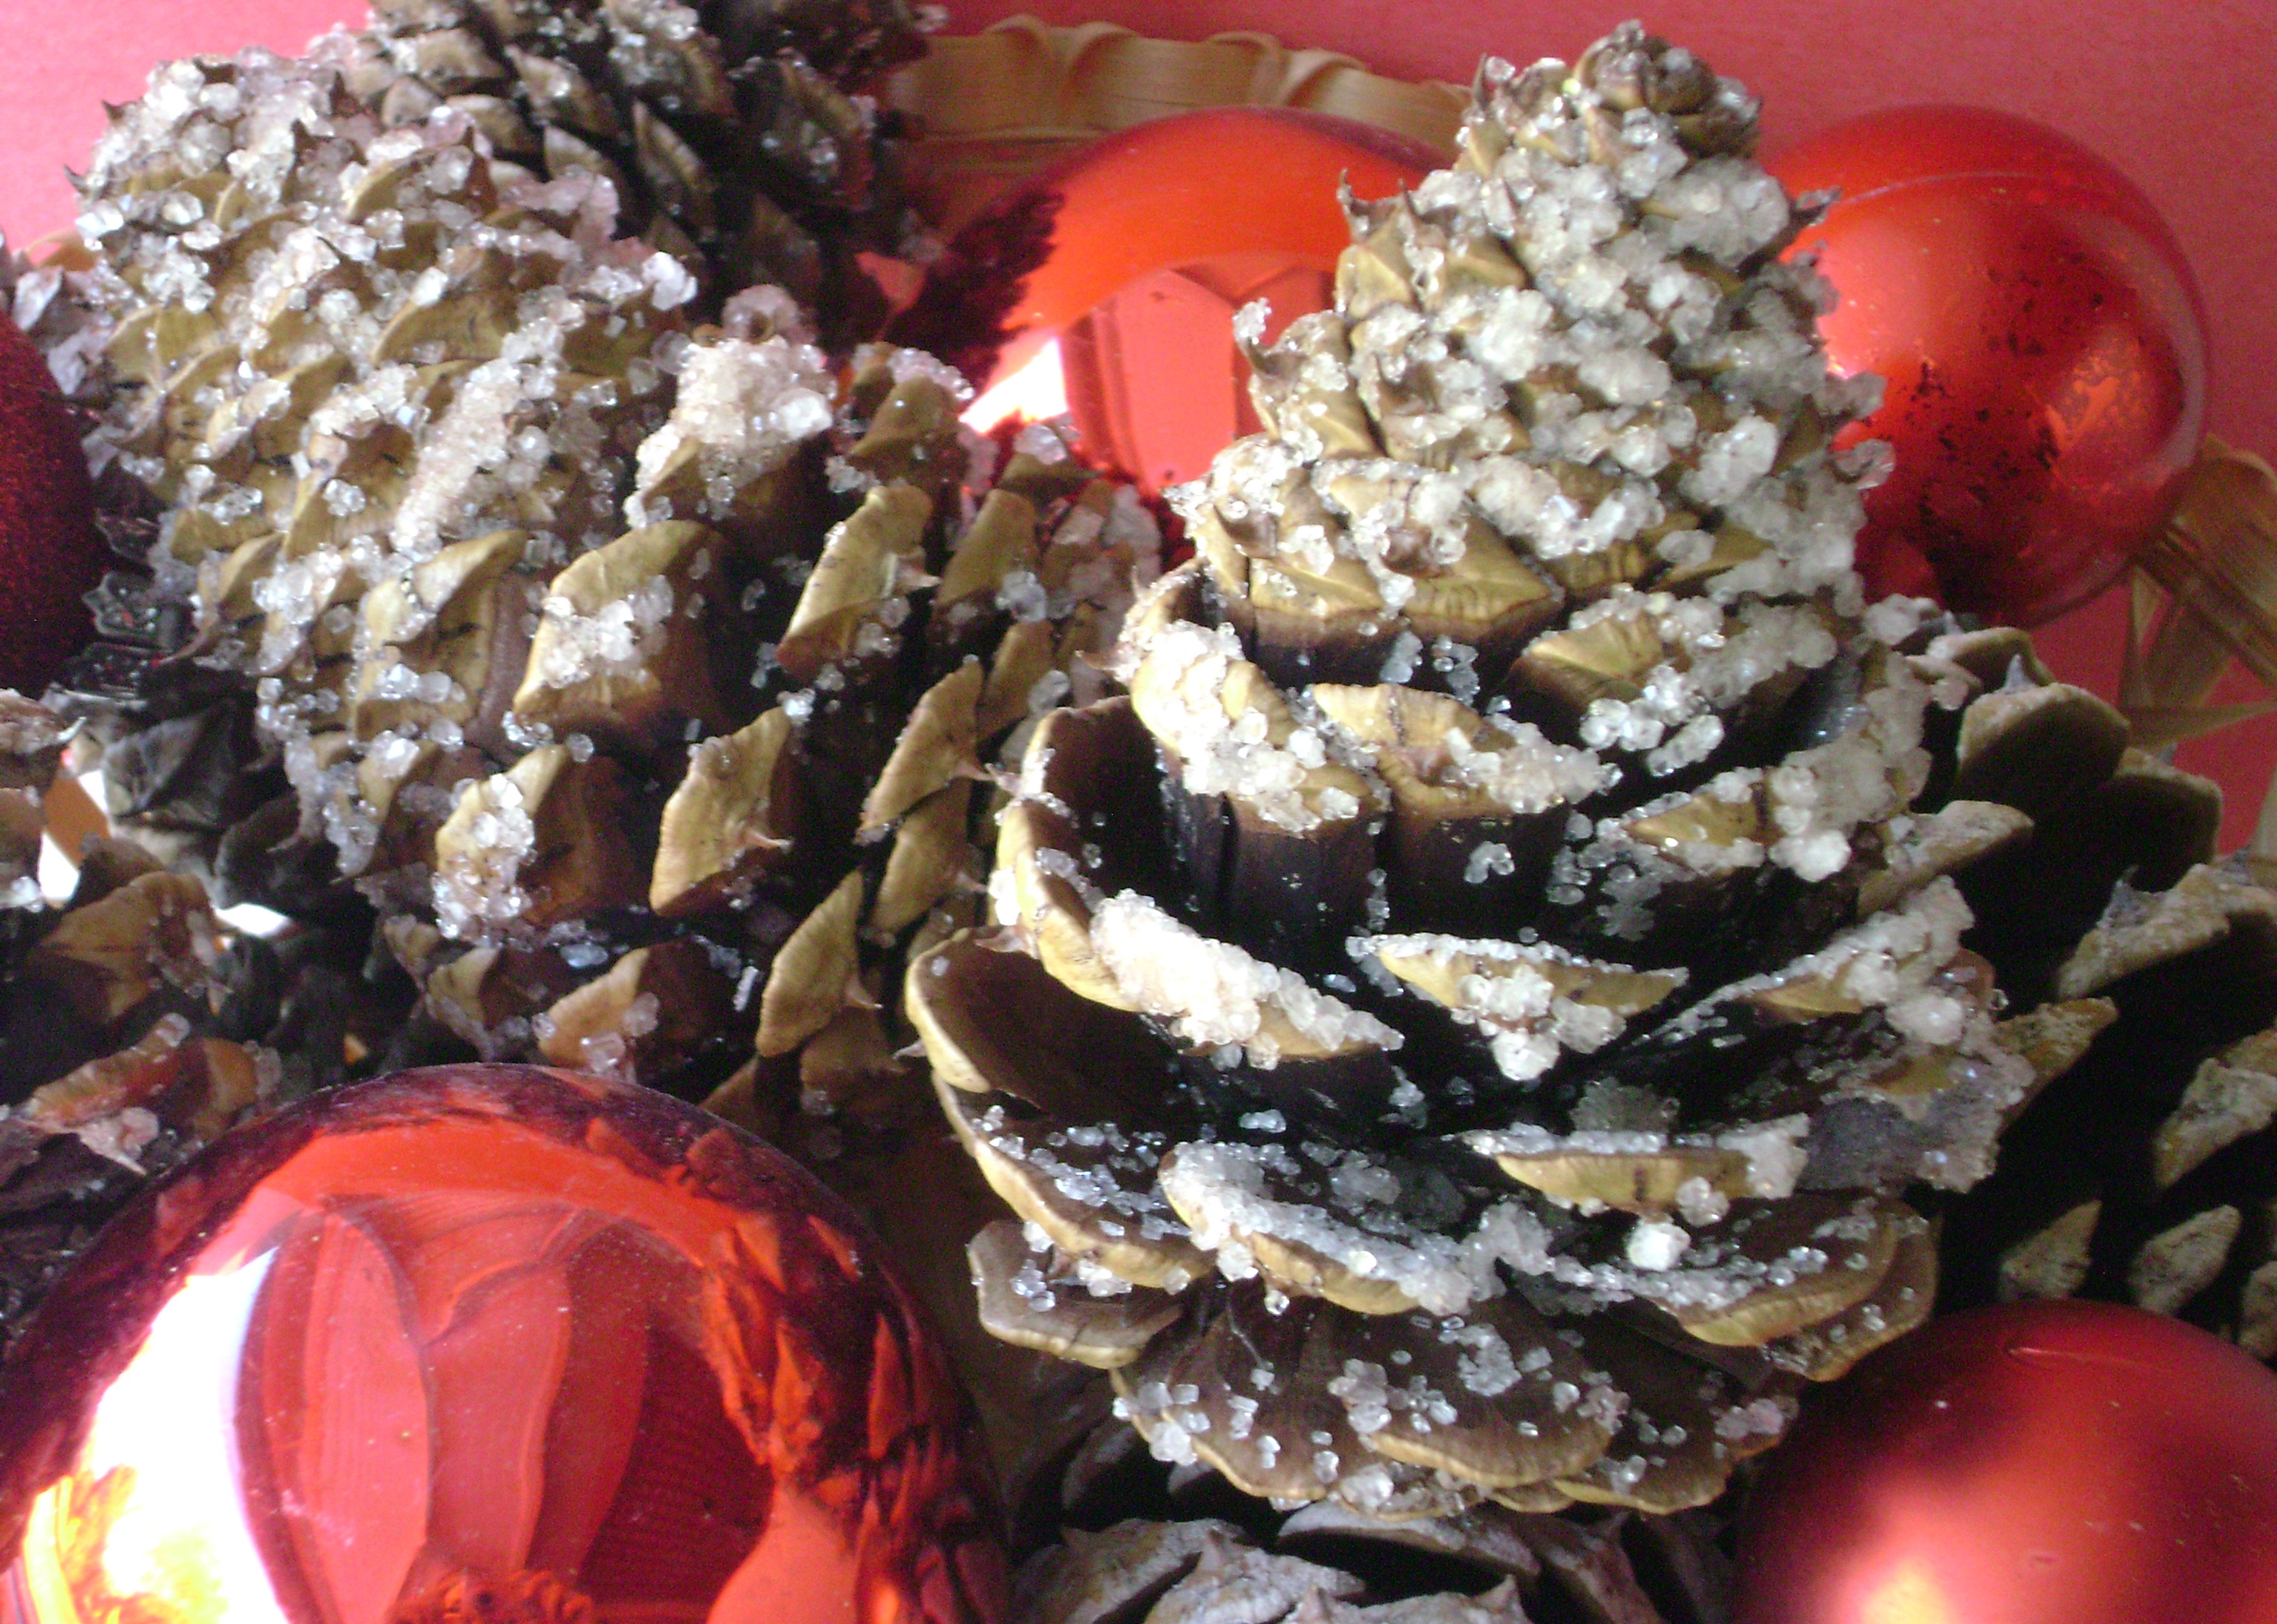 Pine Cone Fire Starter with instructions for colored flames